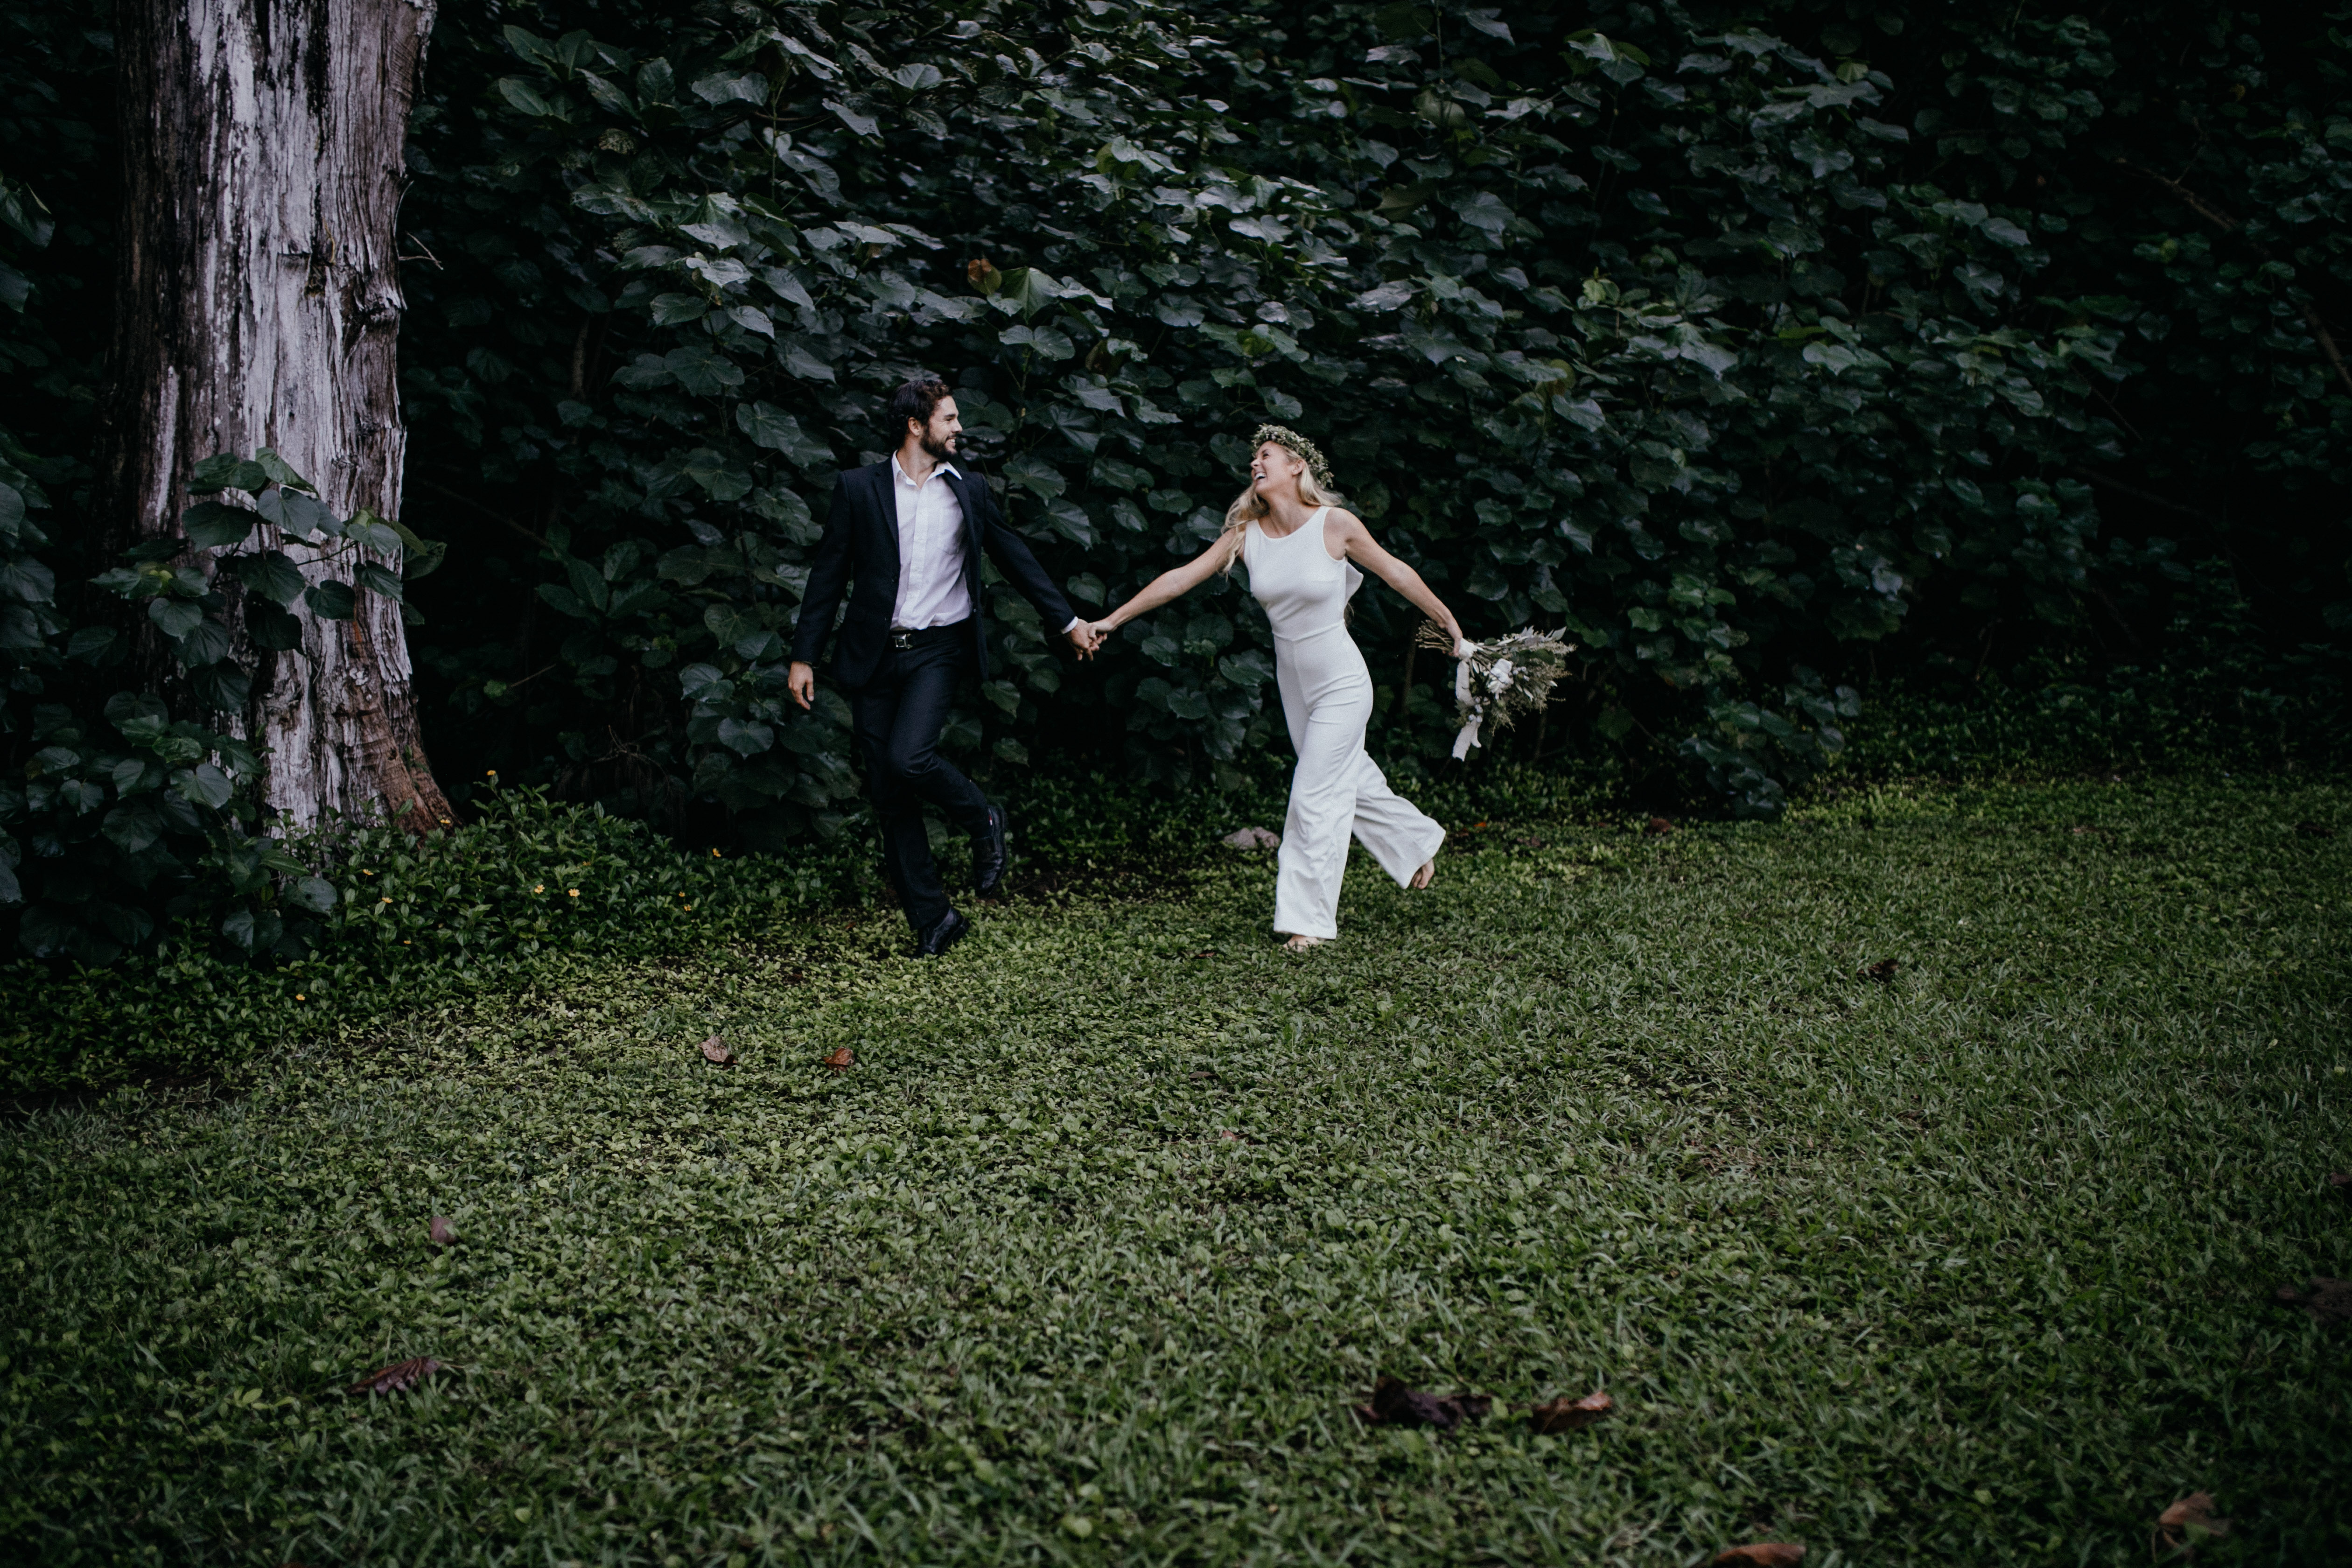 Oahu Wedding Photography, couple walking in the grass